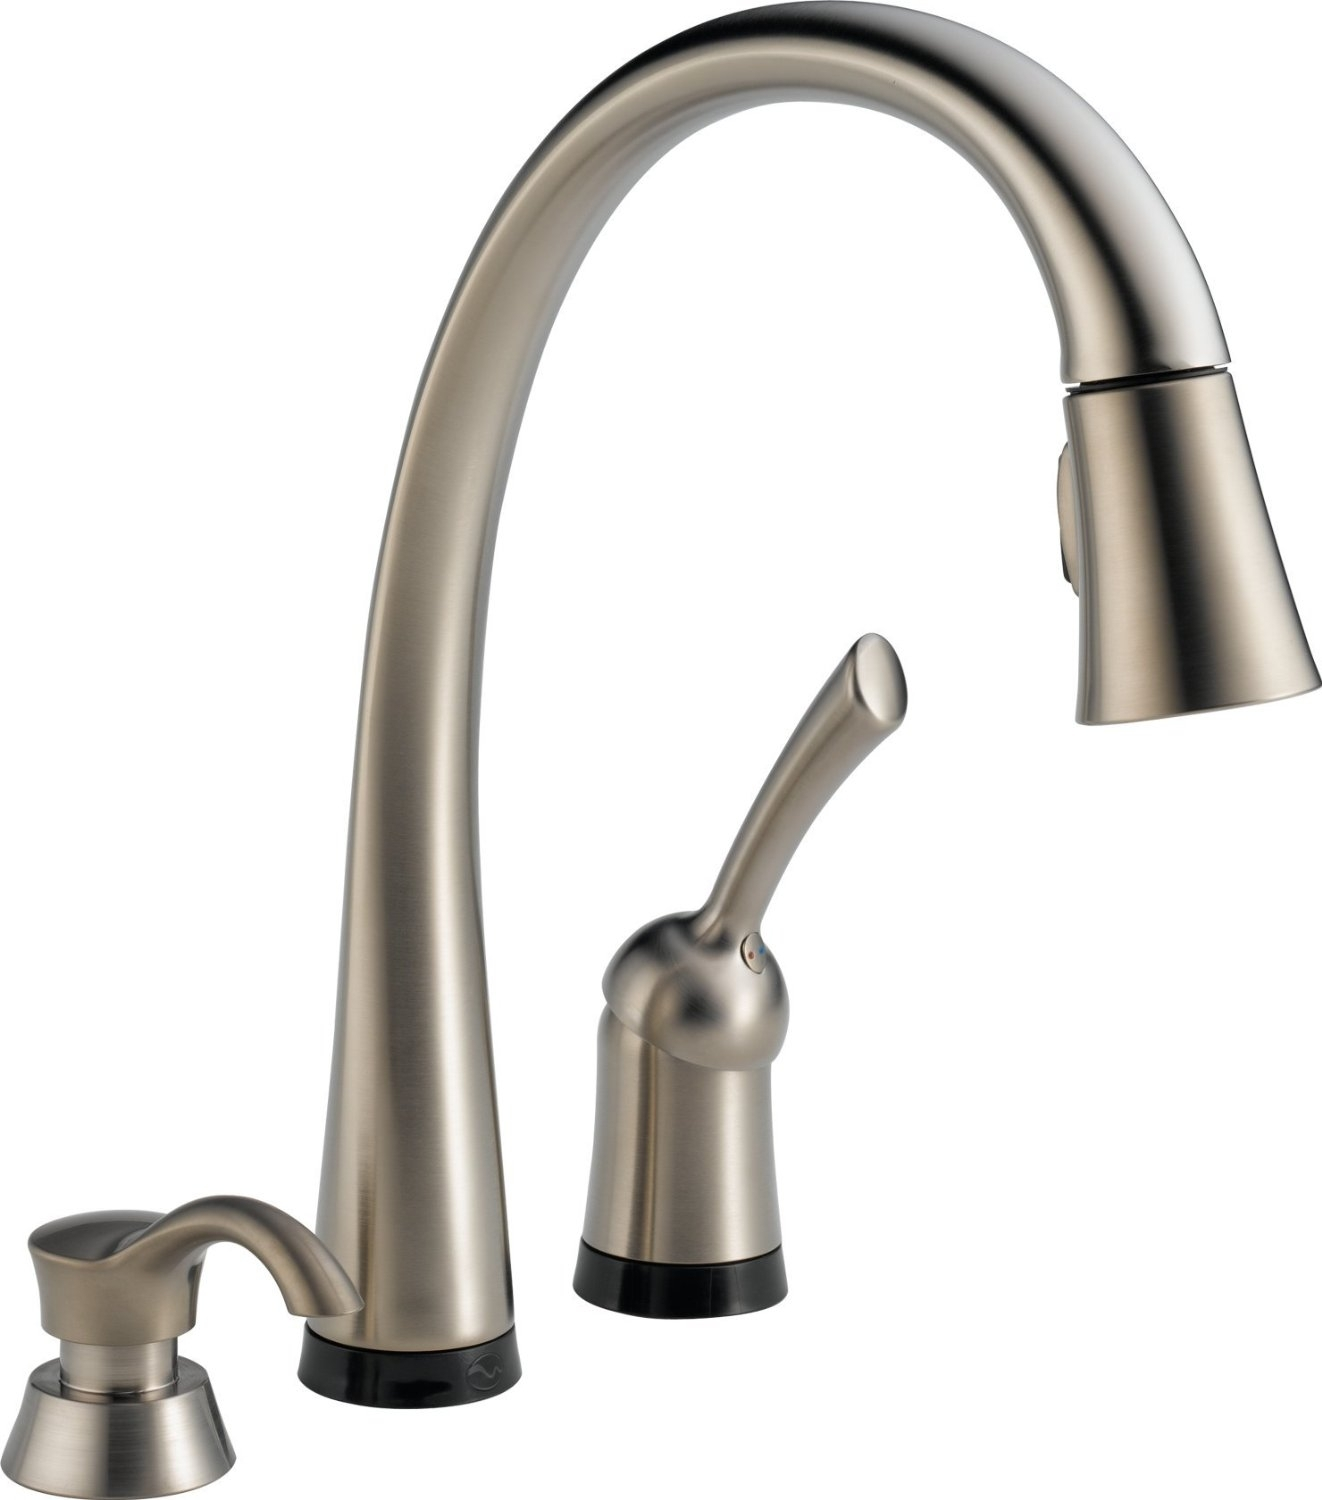 kitchen touchless kitchen faucet inside nice electronic for measurements 1322 x 1500